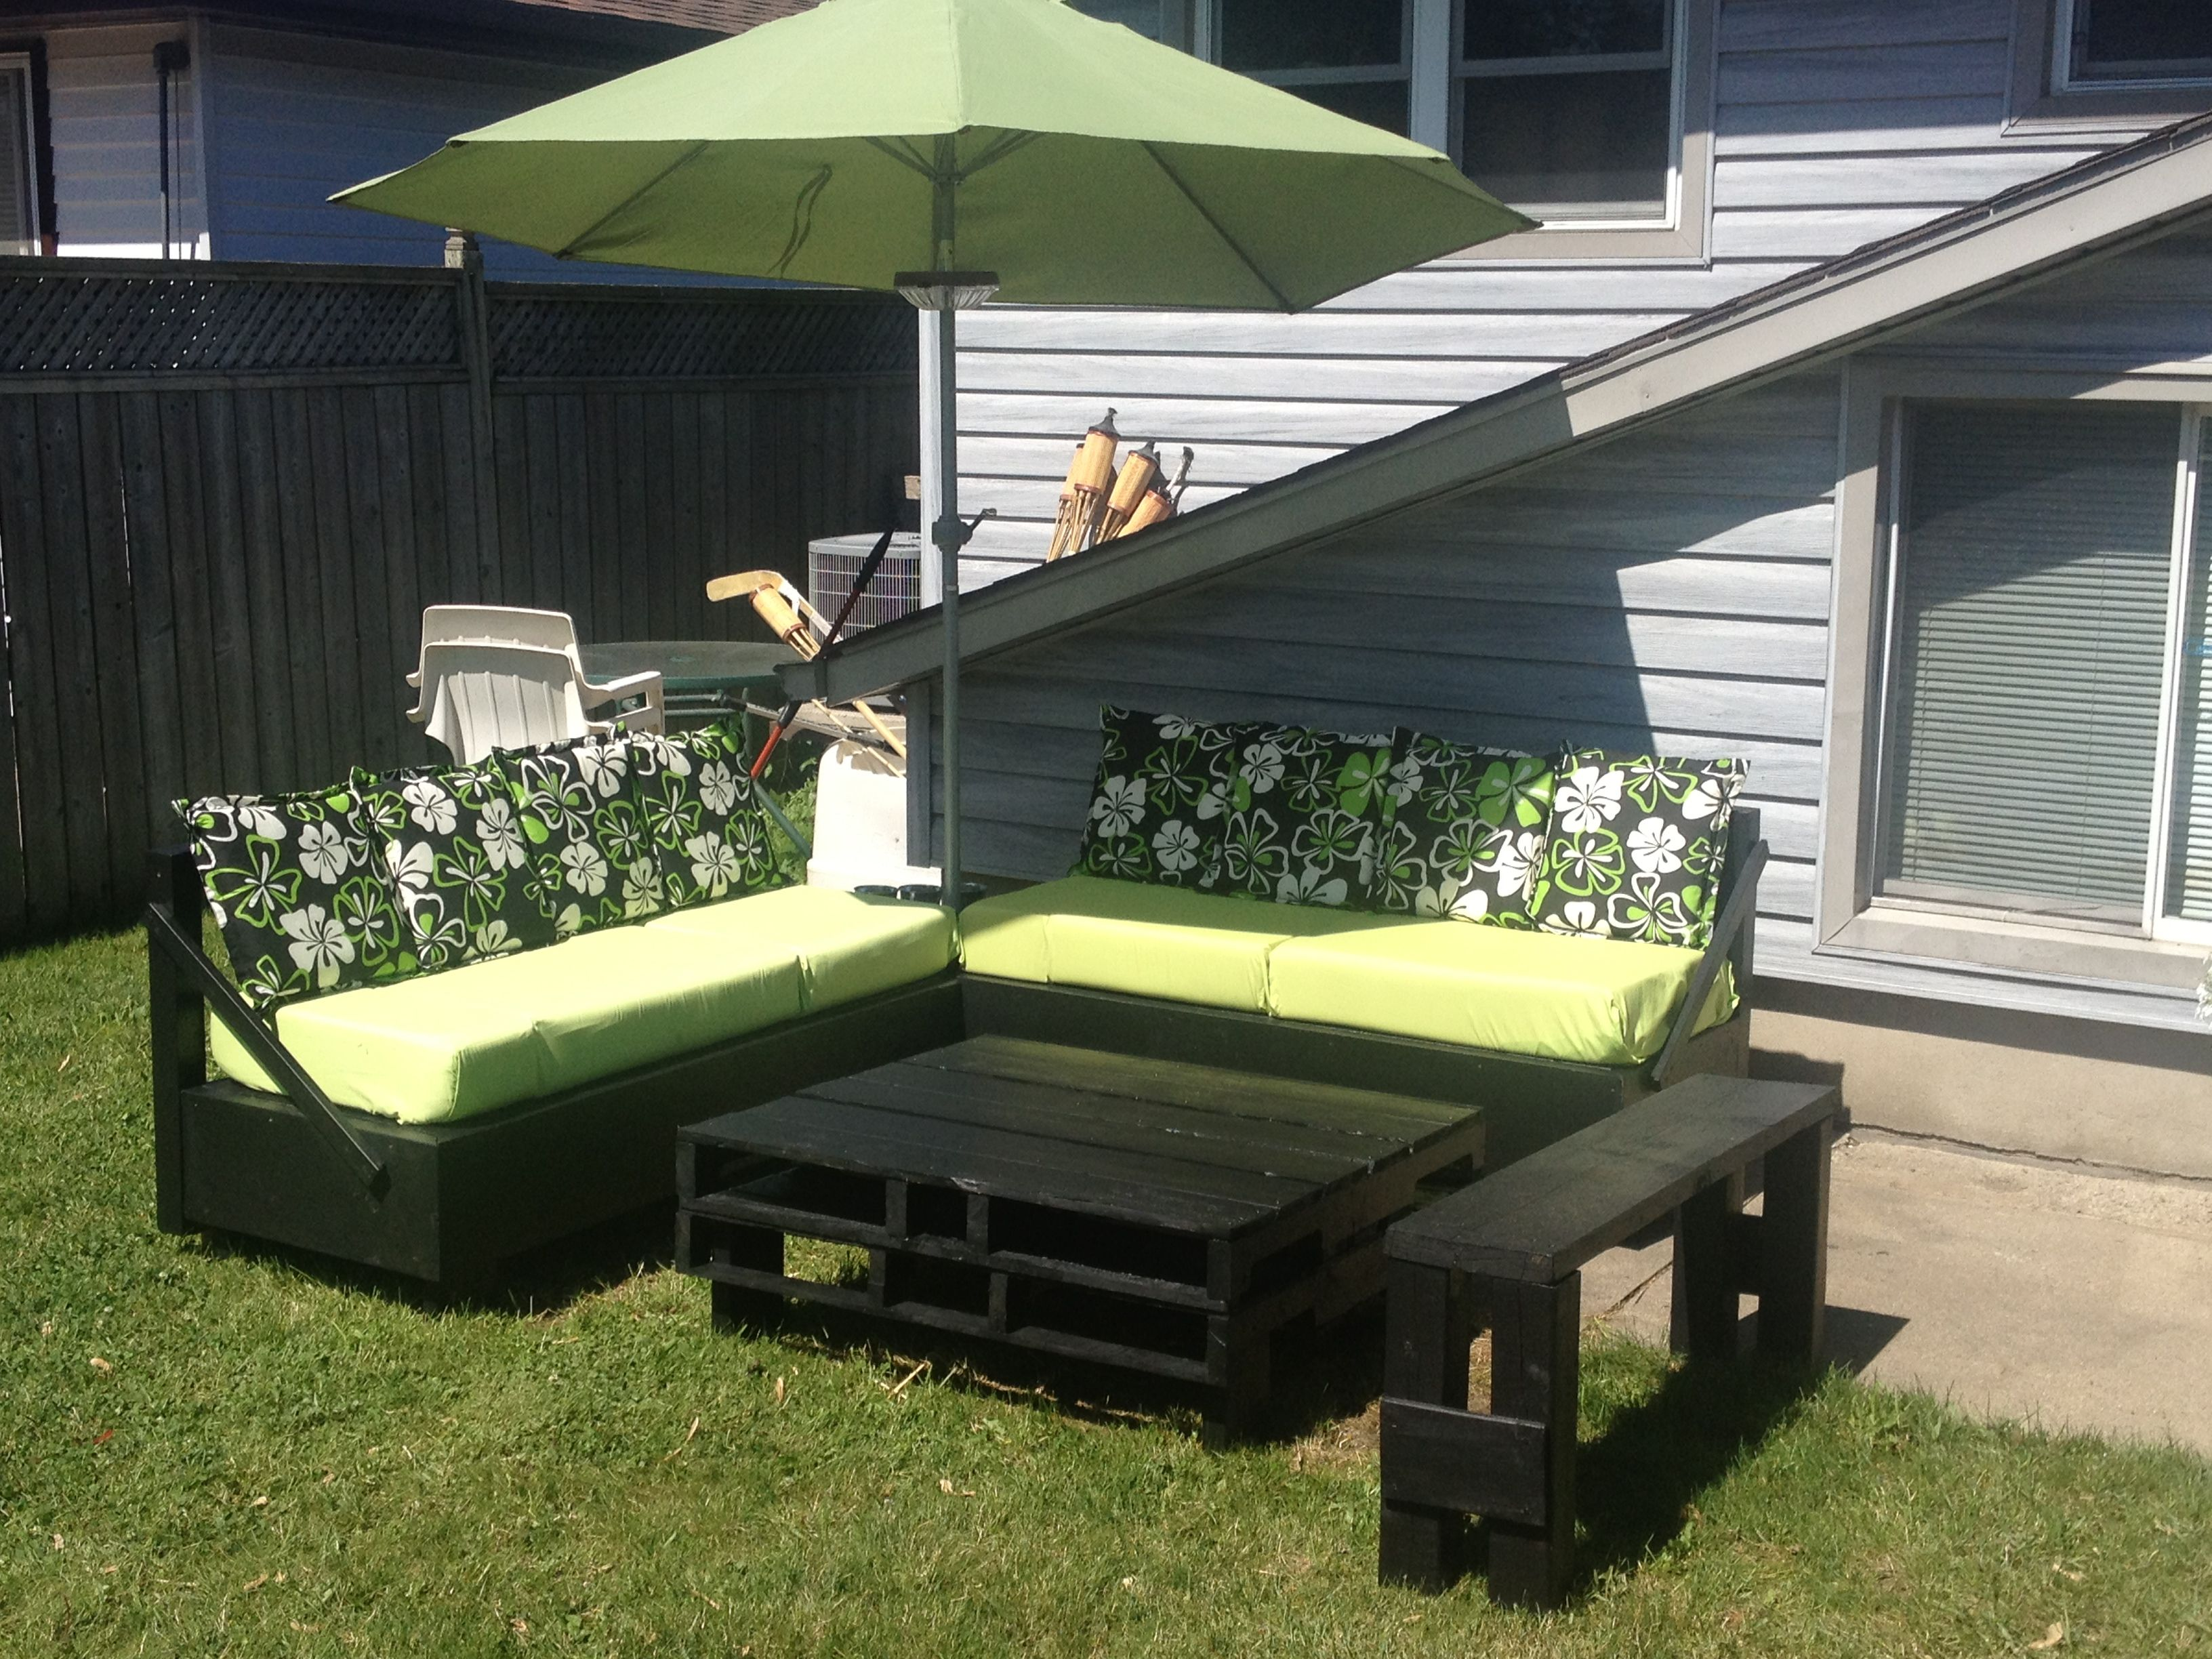 Outdoor Patio Furniture Made From Pallets homemade patio furniture my husband and i made. a lot of work, but